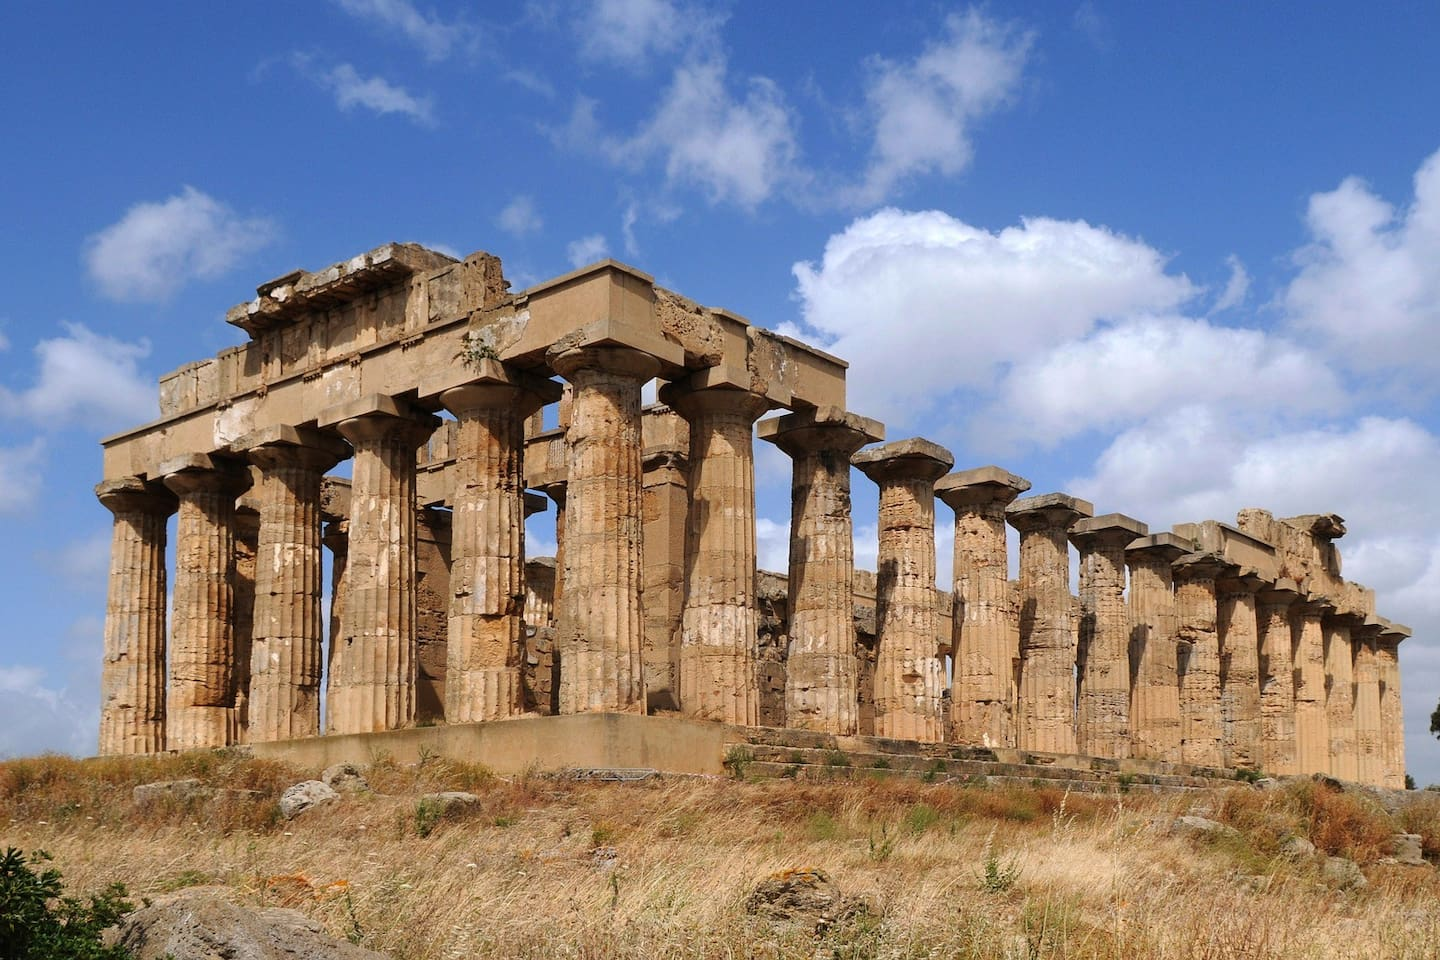 Just few steps away from the wonderful Greek archeological park of Selinunte